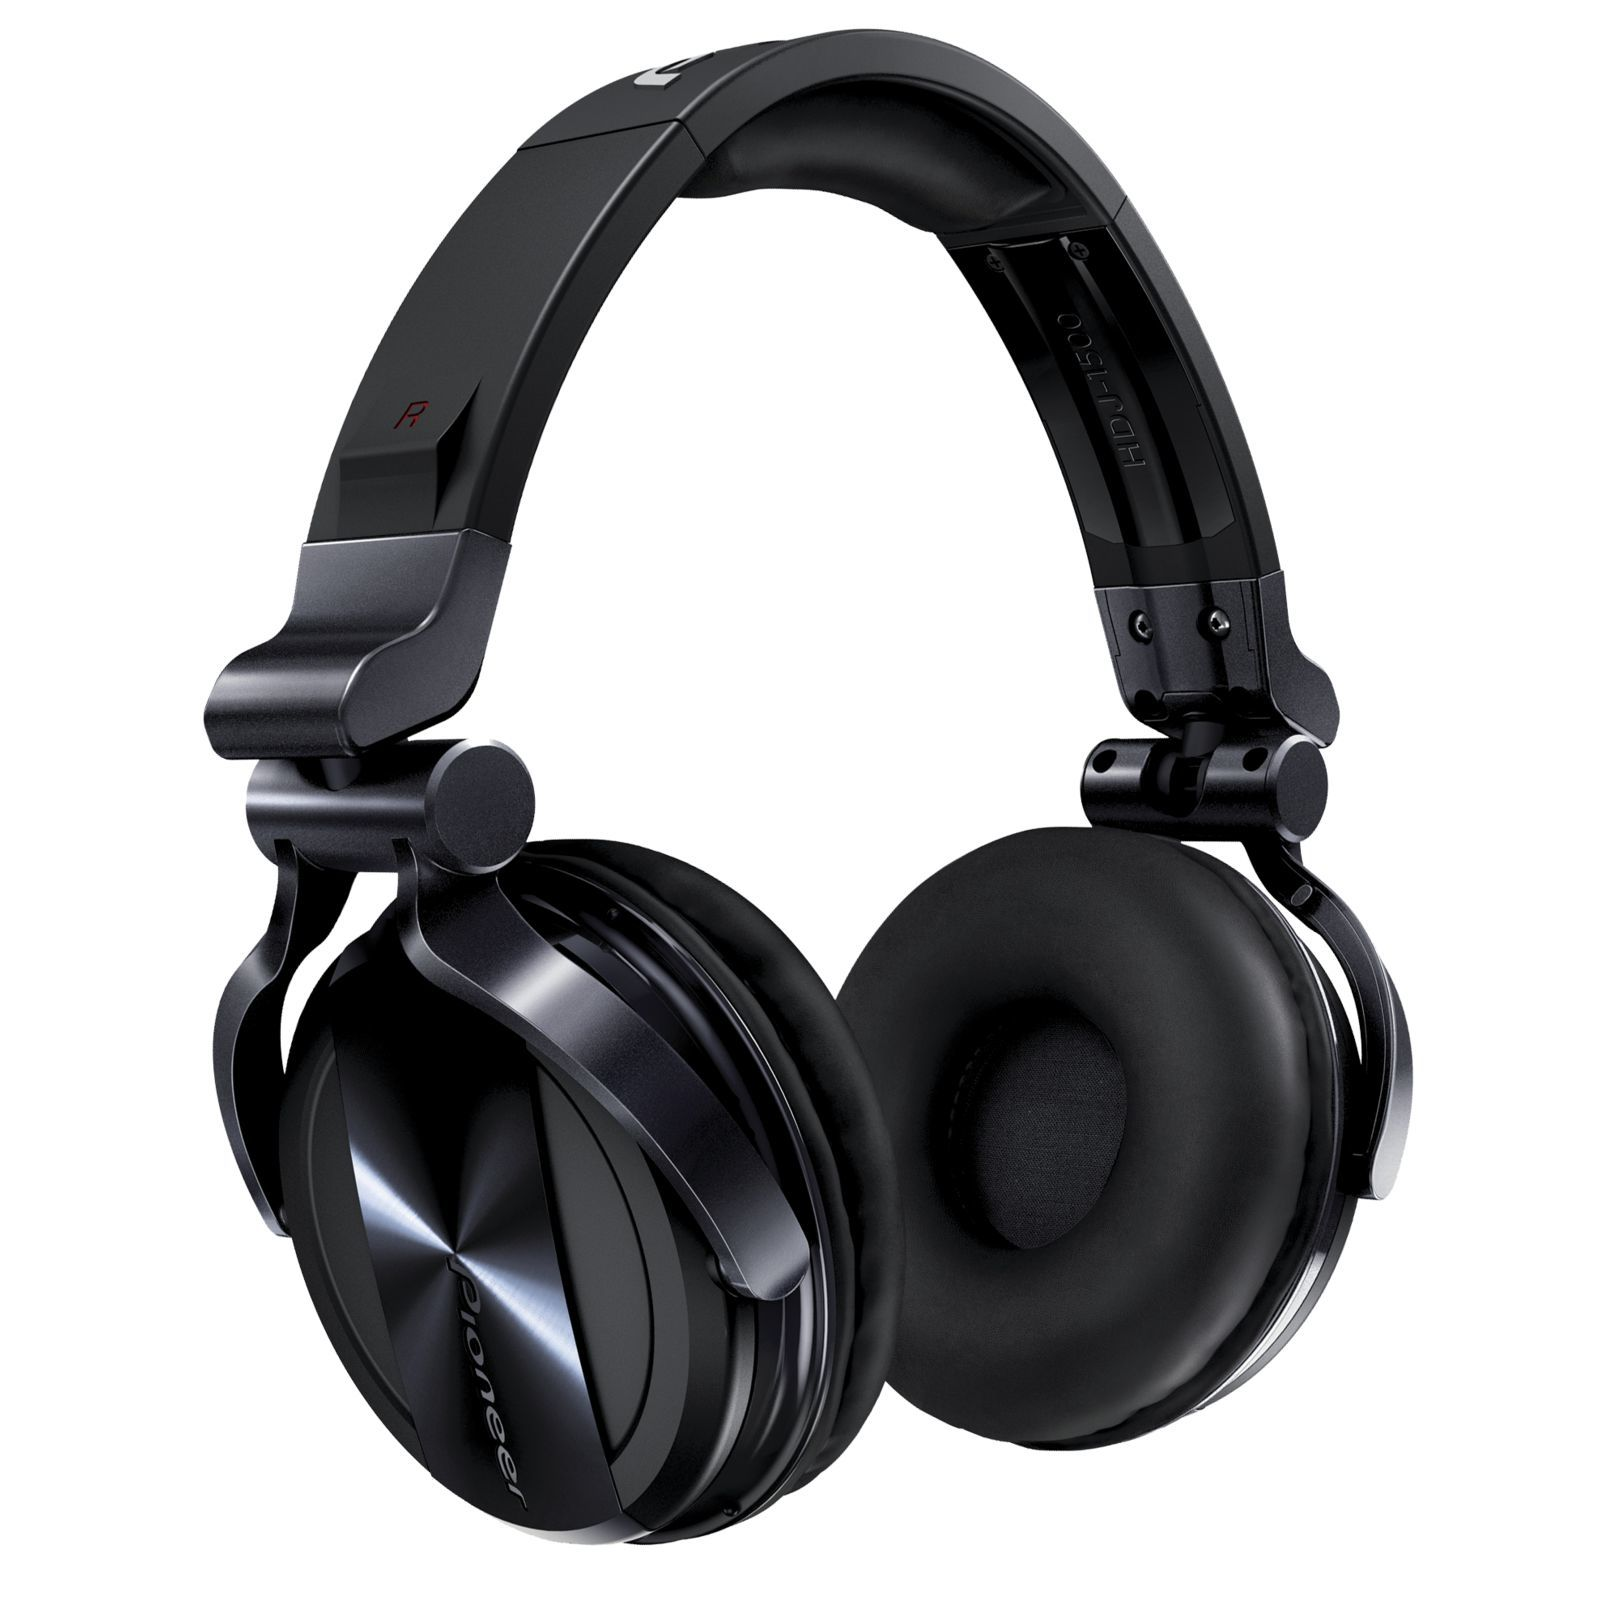 Pioneer HDJ-1500-K DJ Headphones, Black Изображение товара